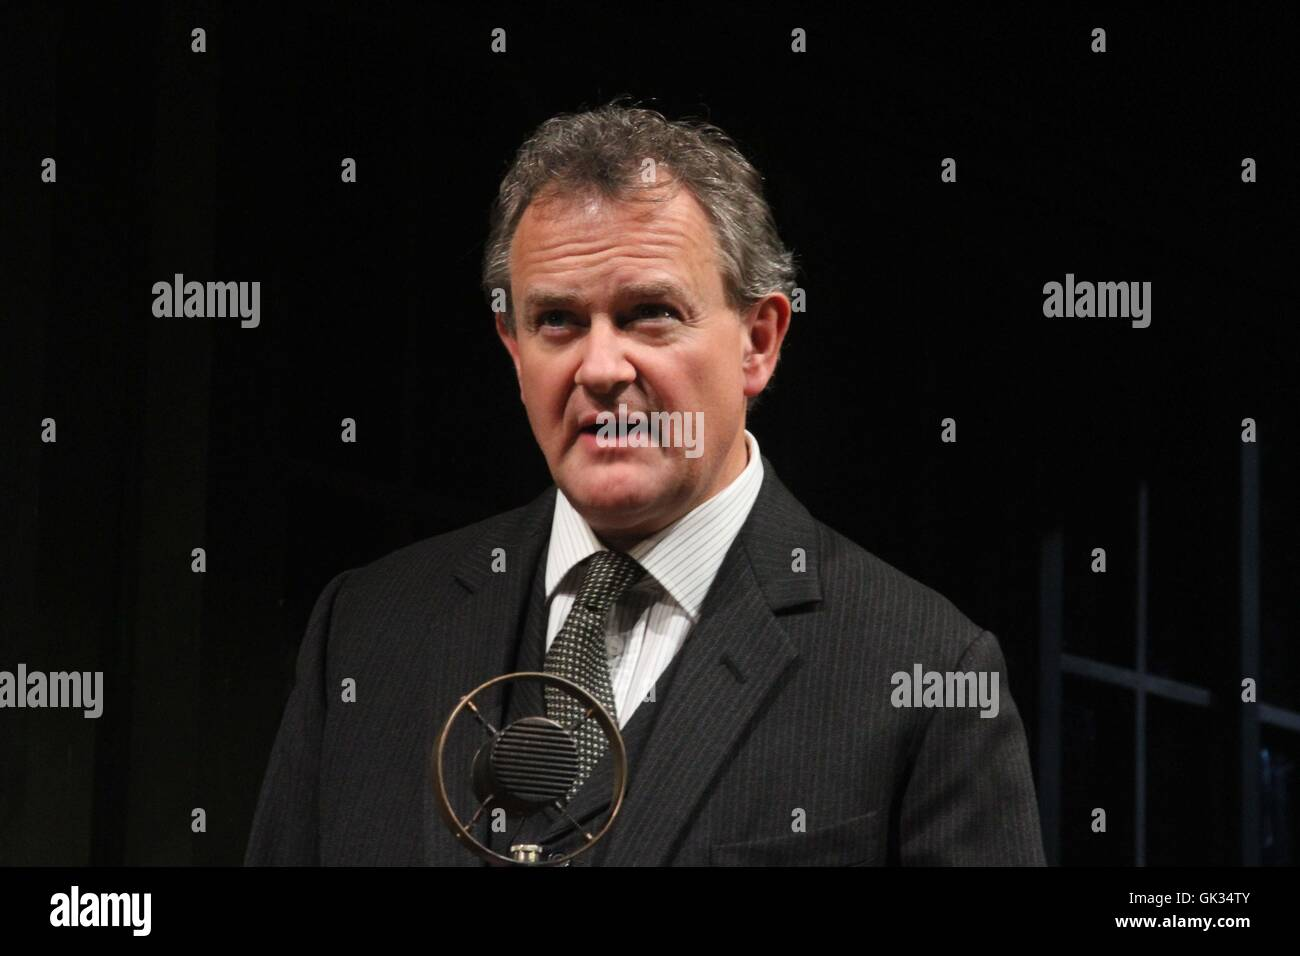 Hugh Bonneville stars as Dr. Stockmann in Henrik Ibsen's 'An Enemy of the People' at The Chichester - Stock Image